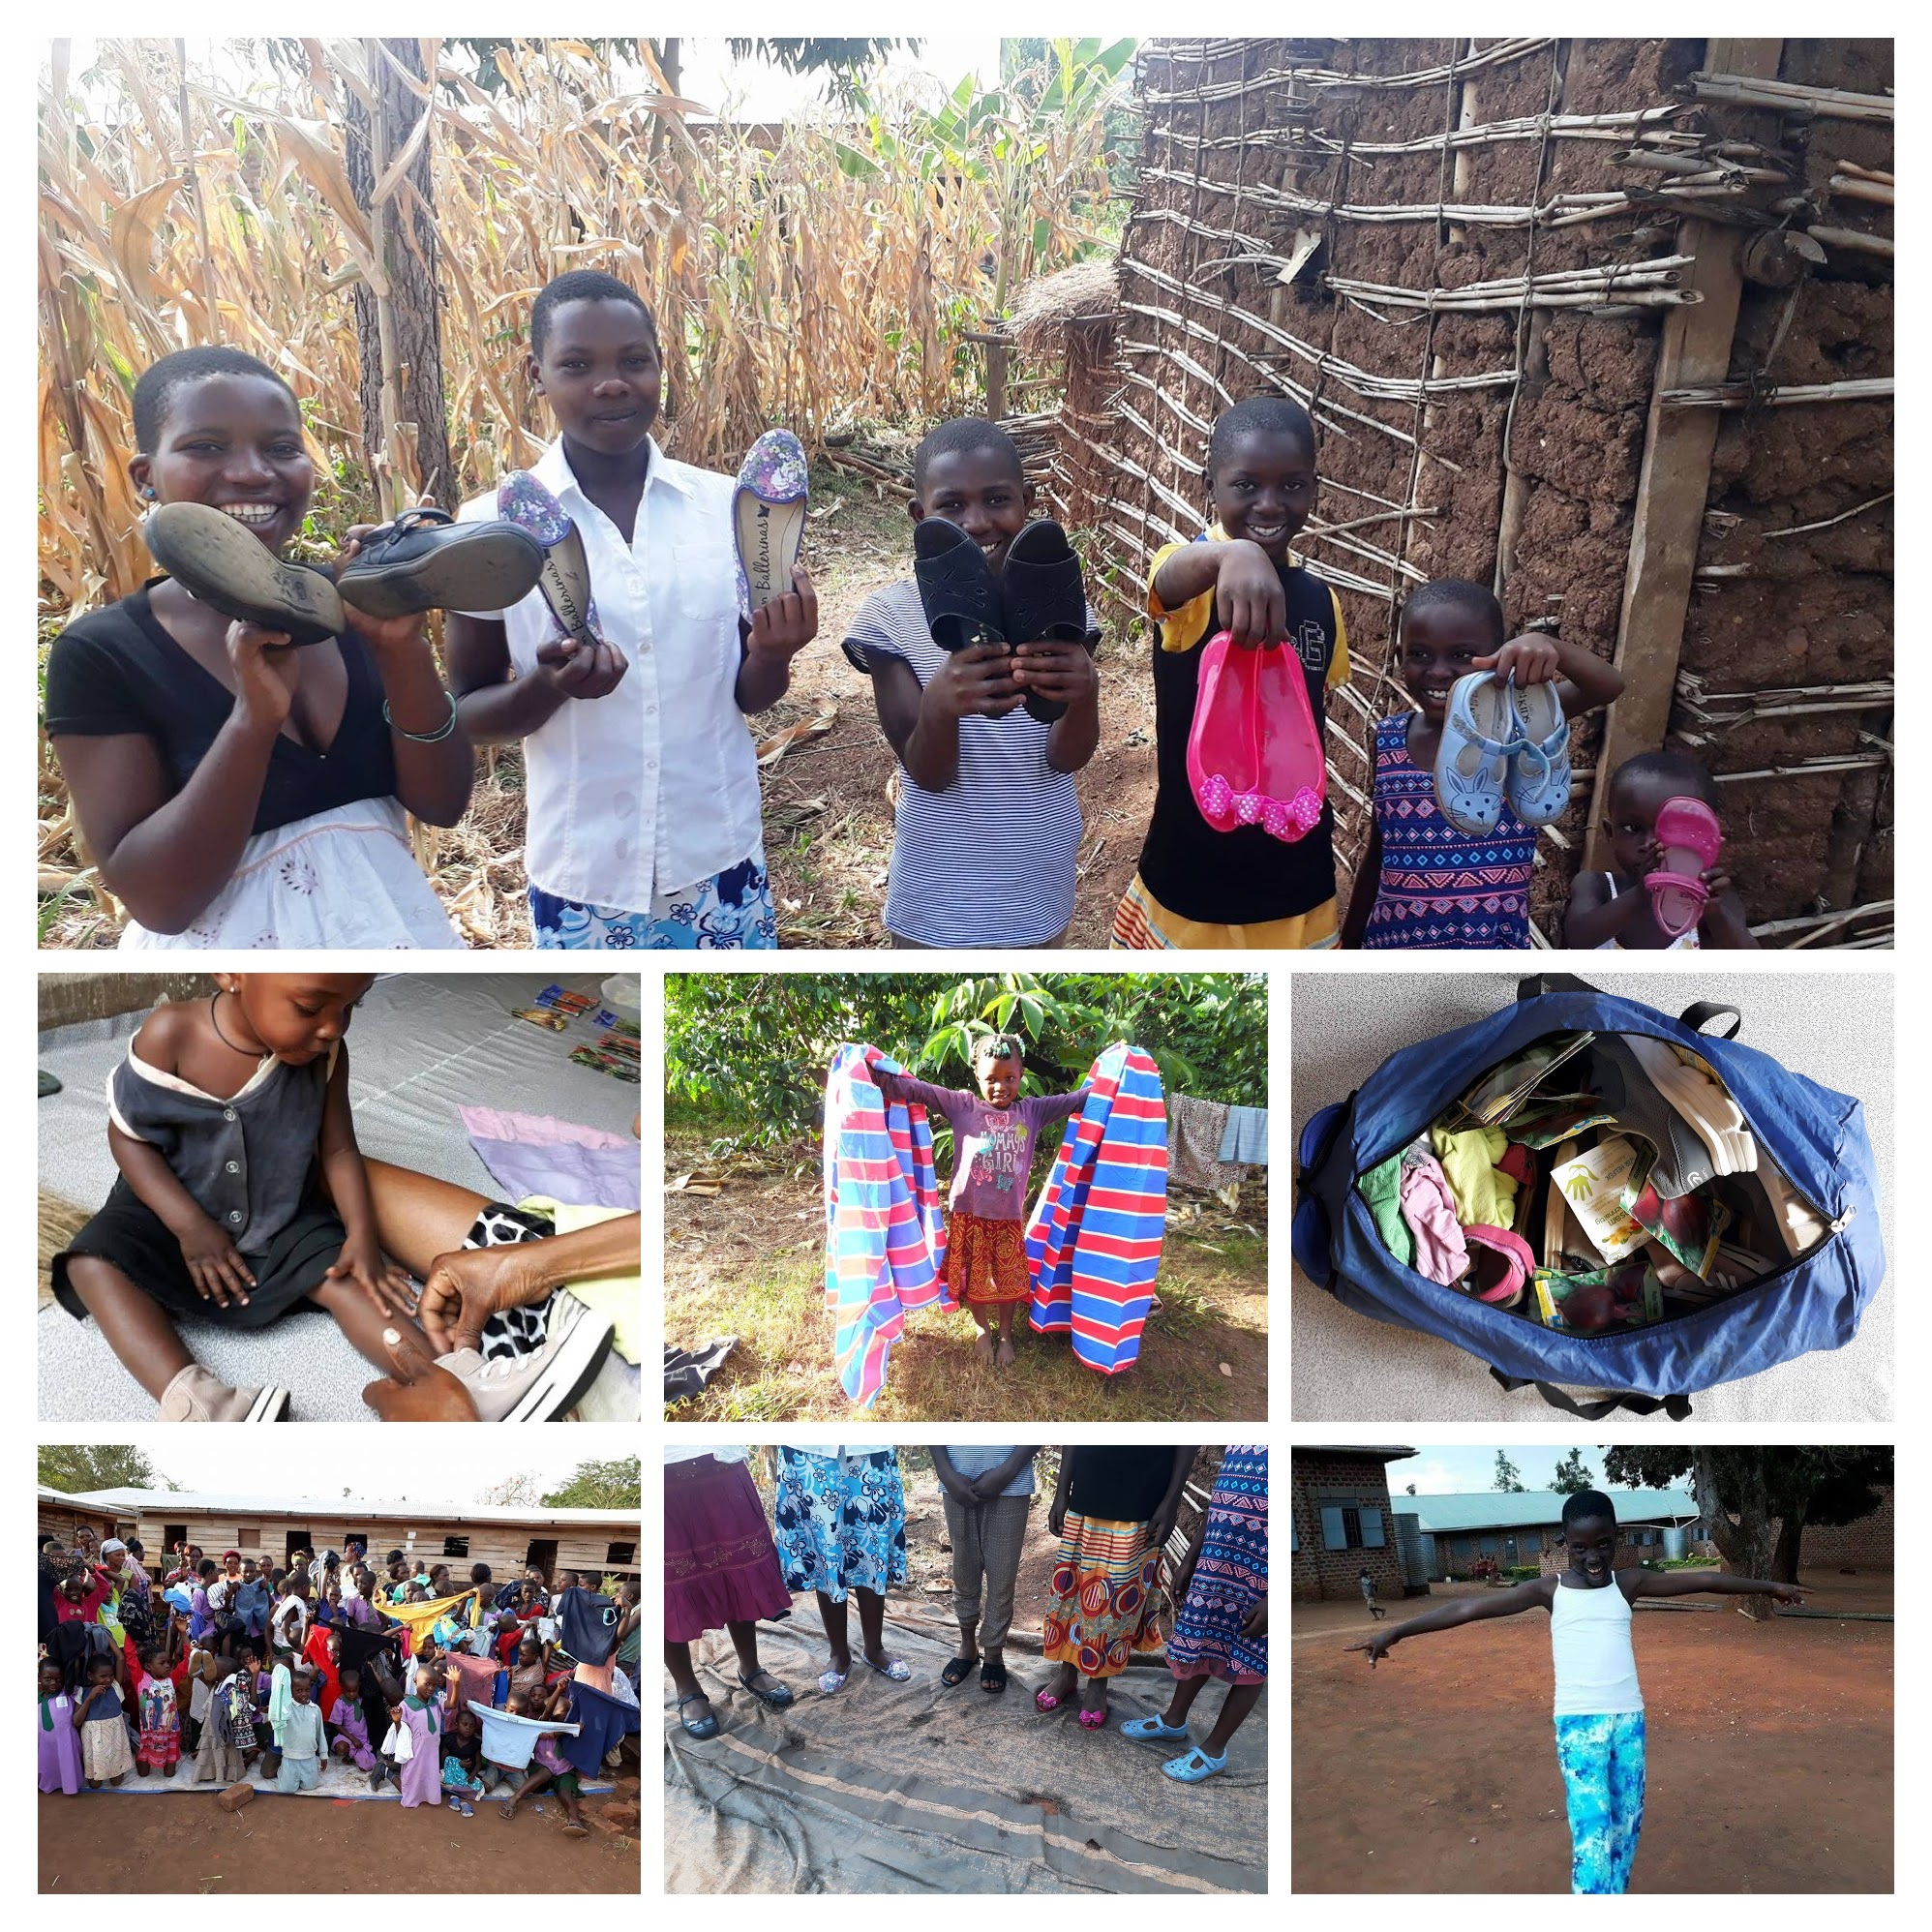 Clothing Donations for the Community Children